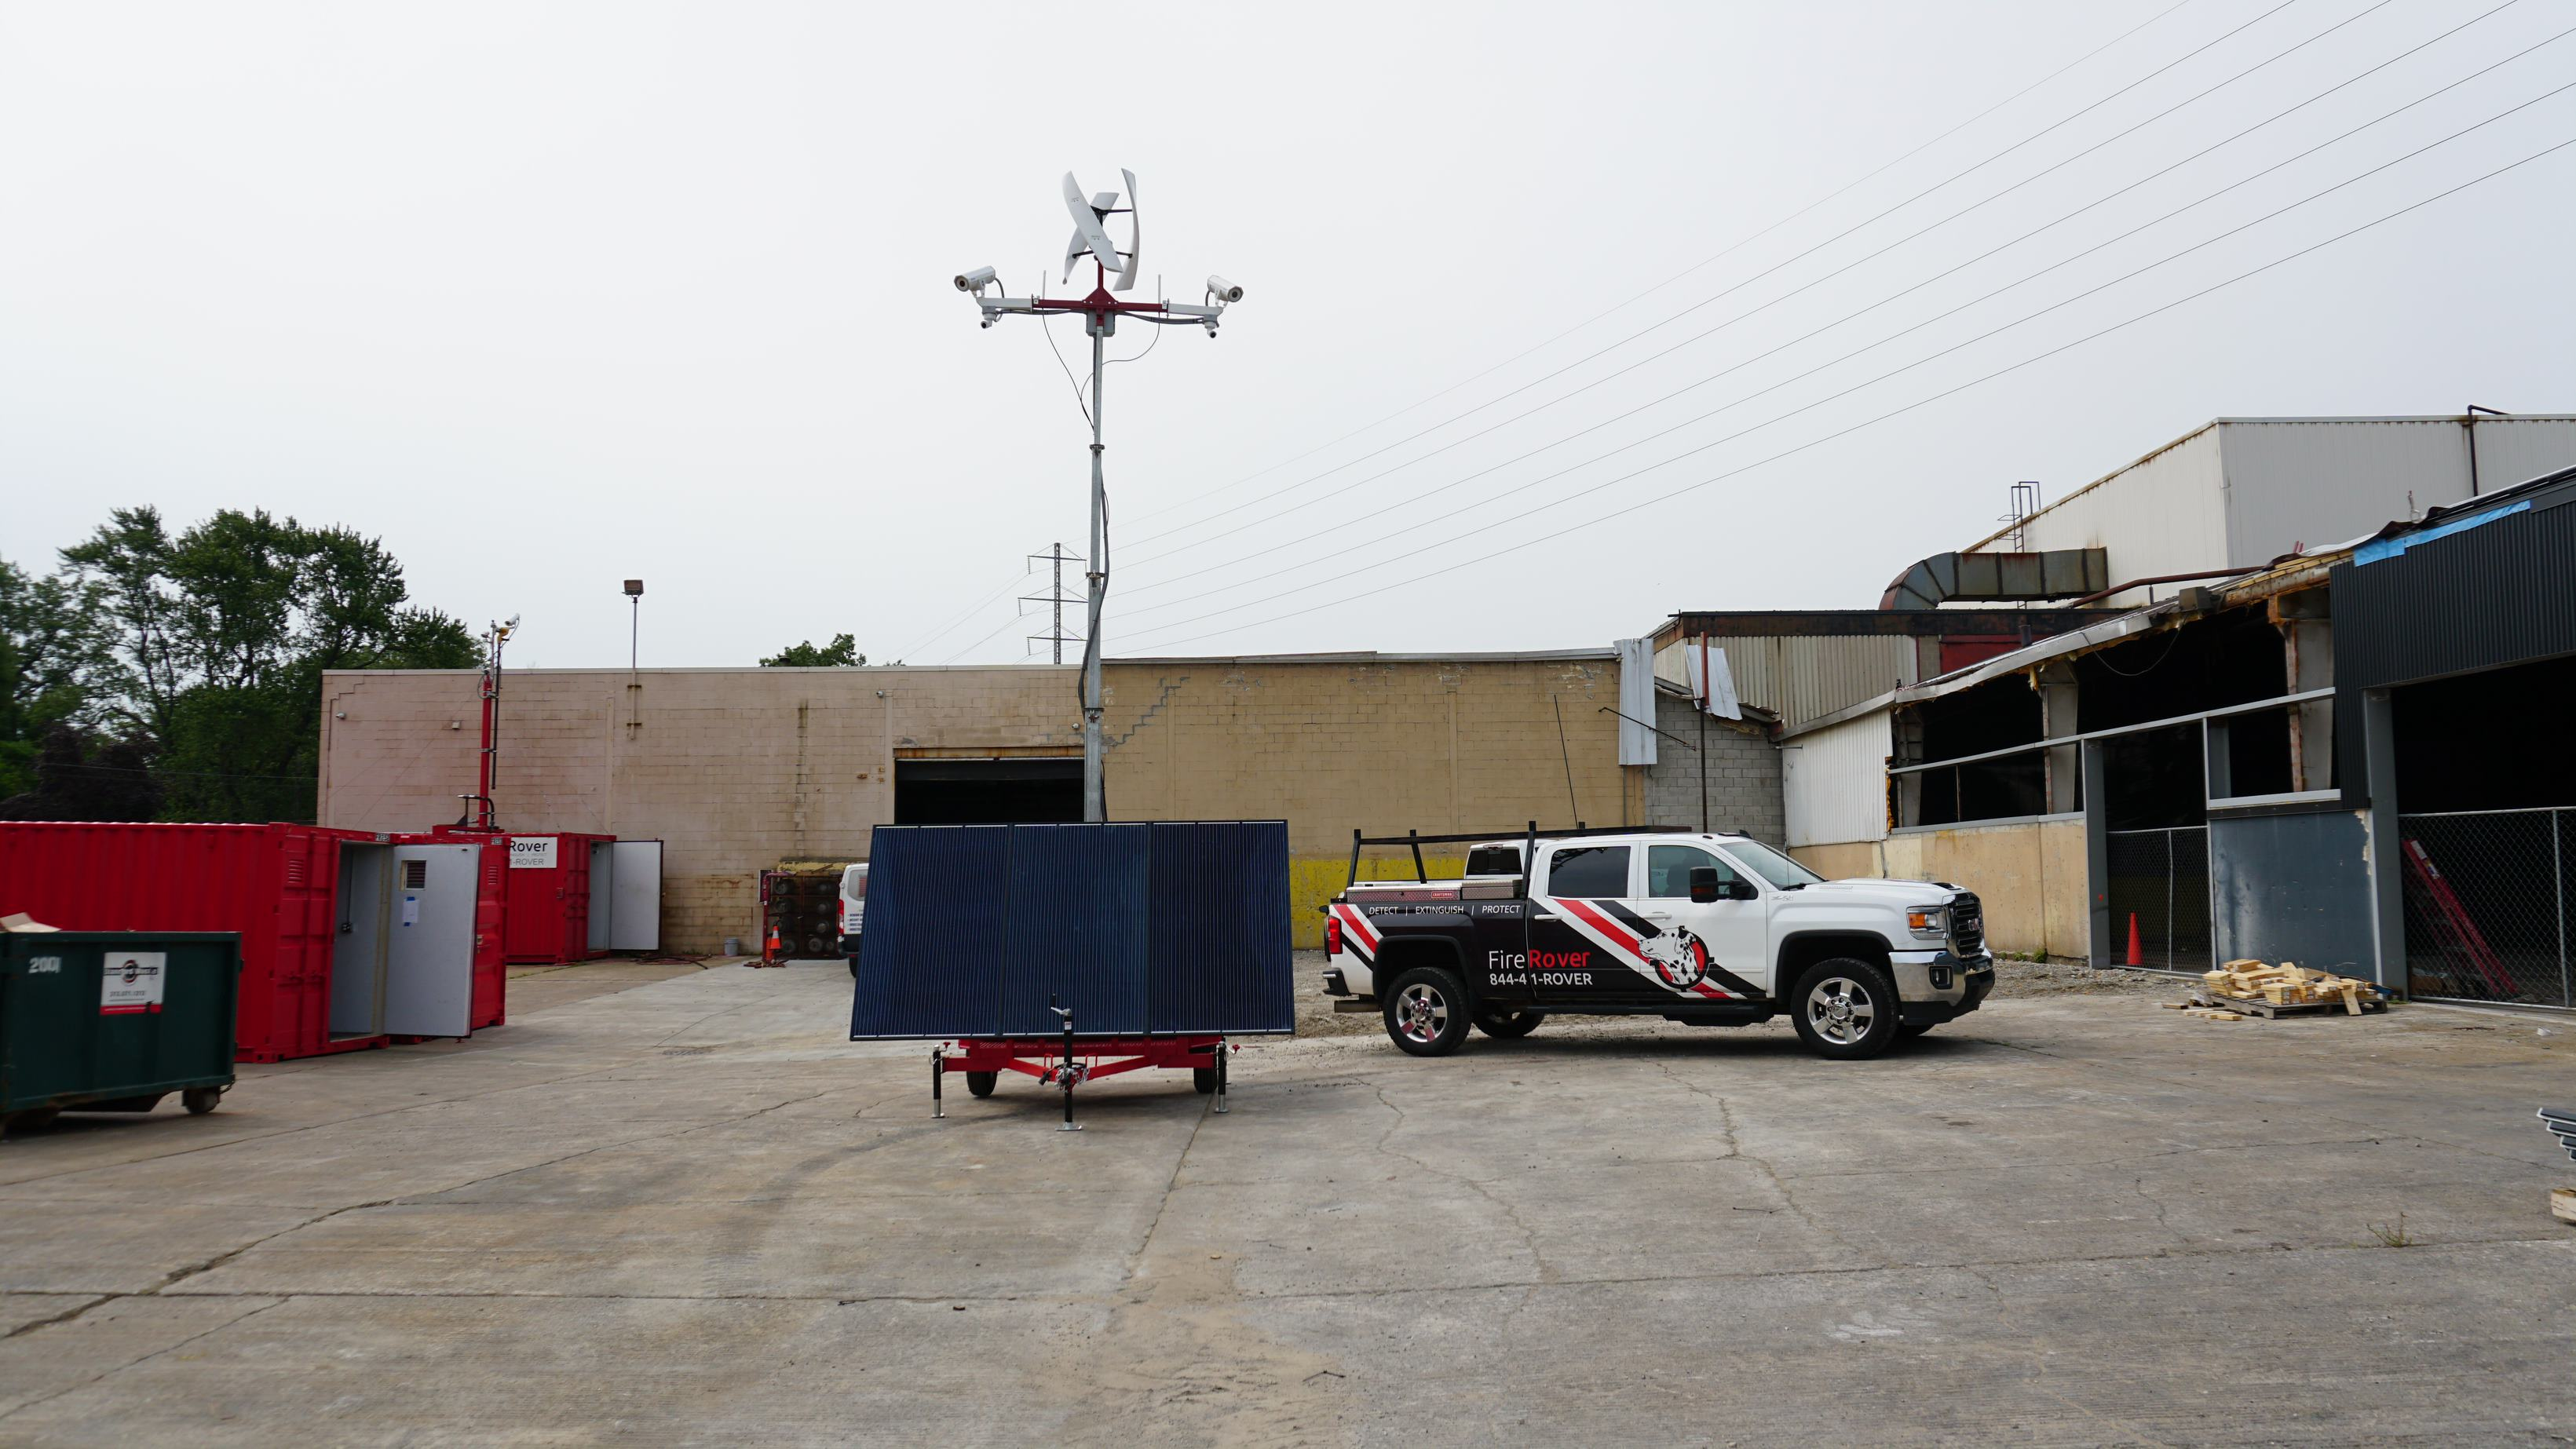 Fire Rover Launches Early Detection Solution for Landfills, Wildfires & More